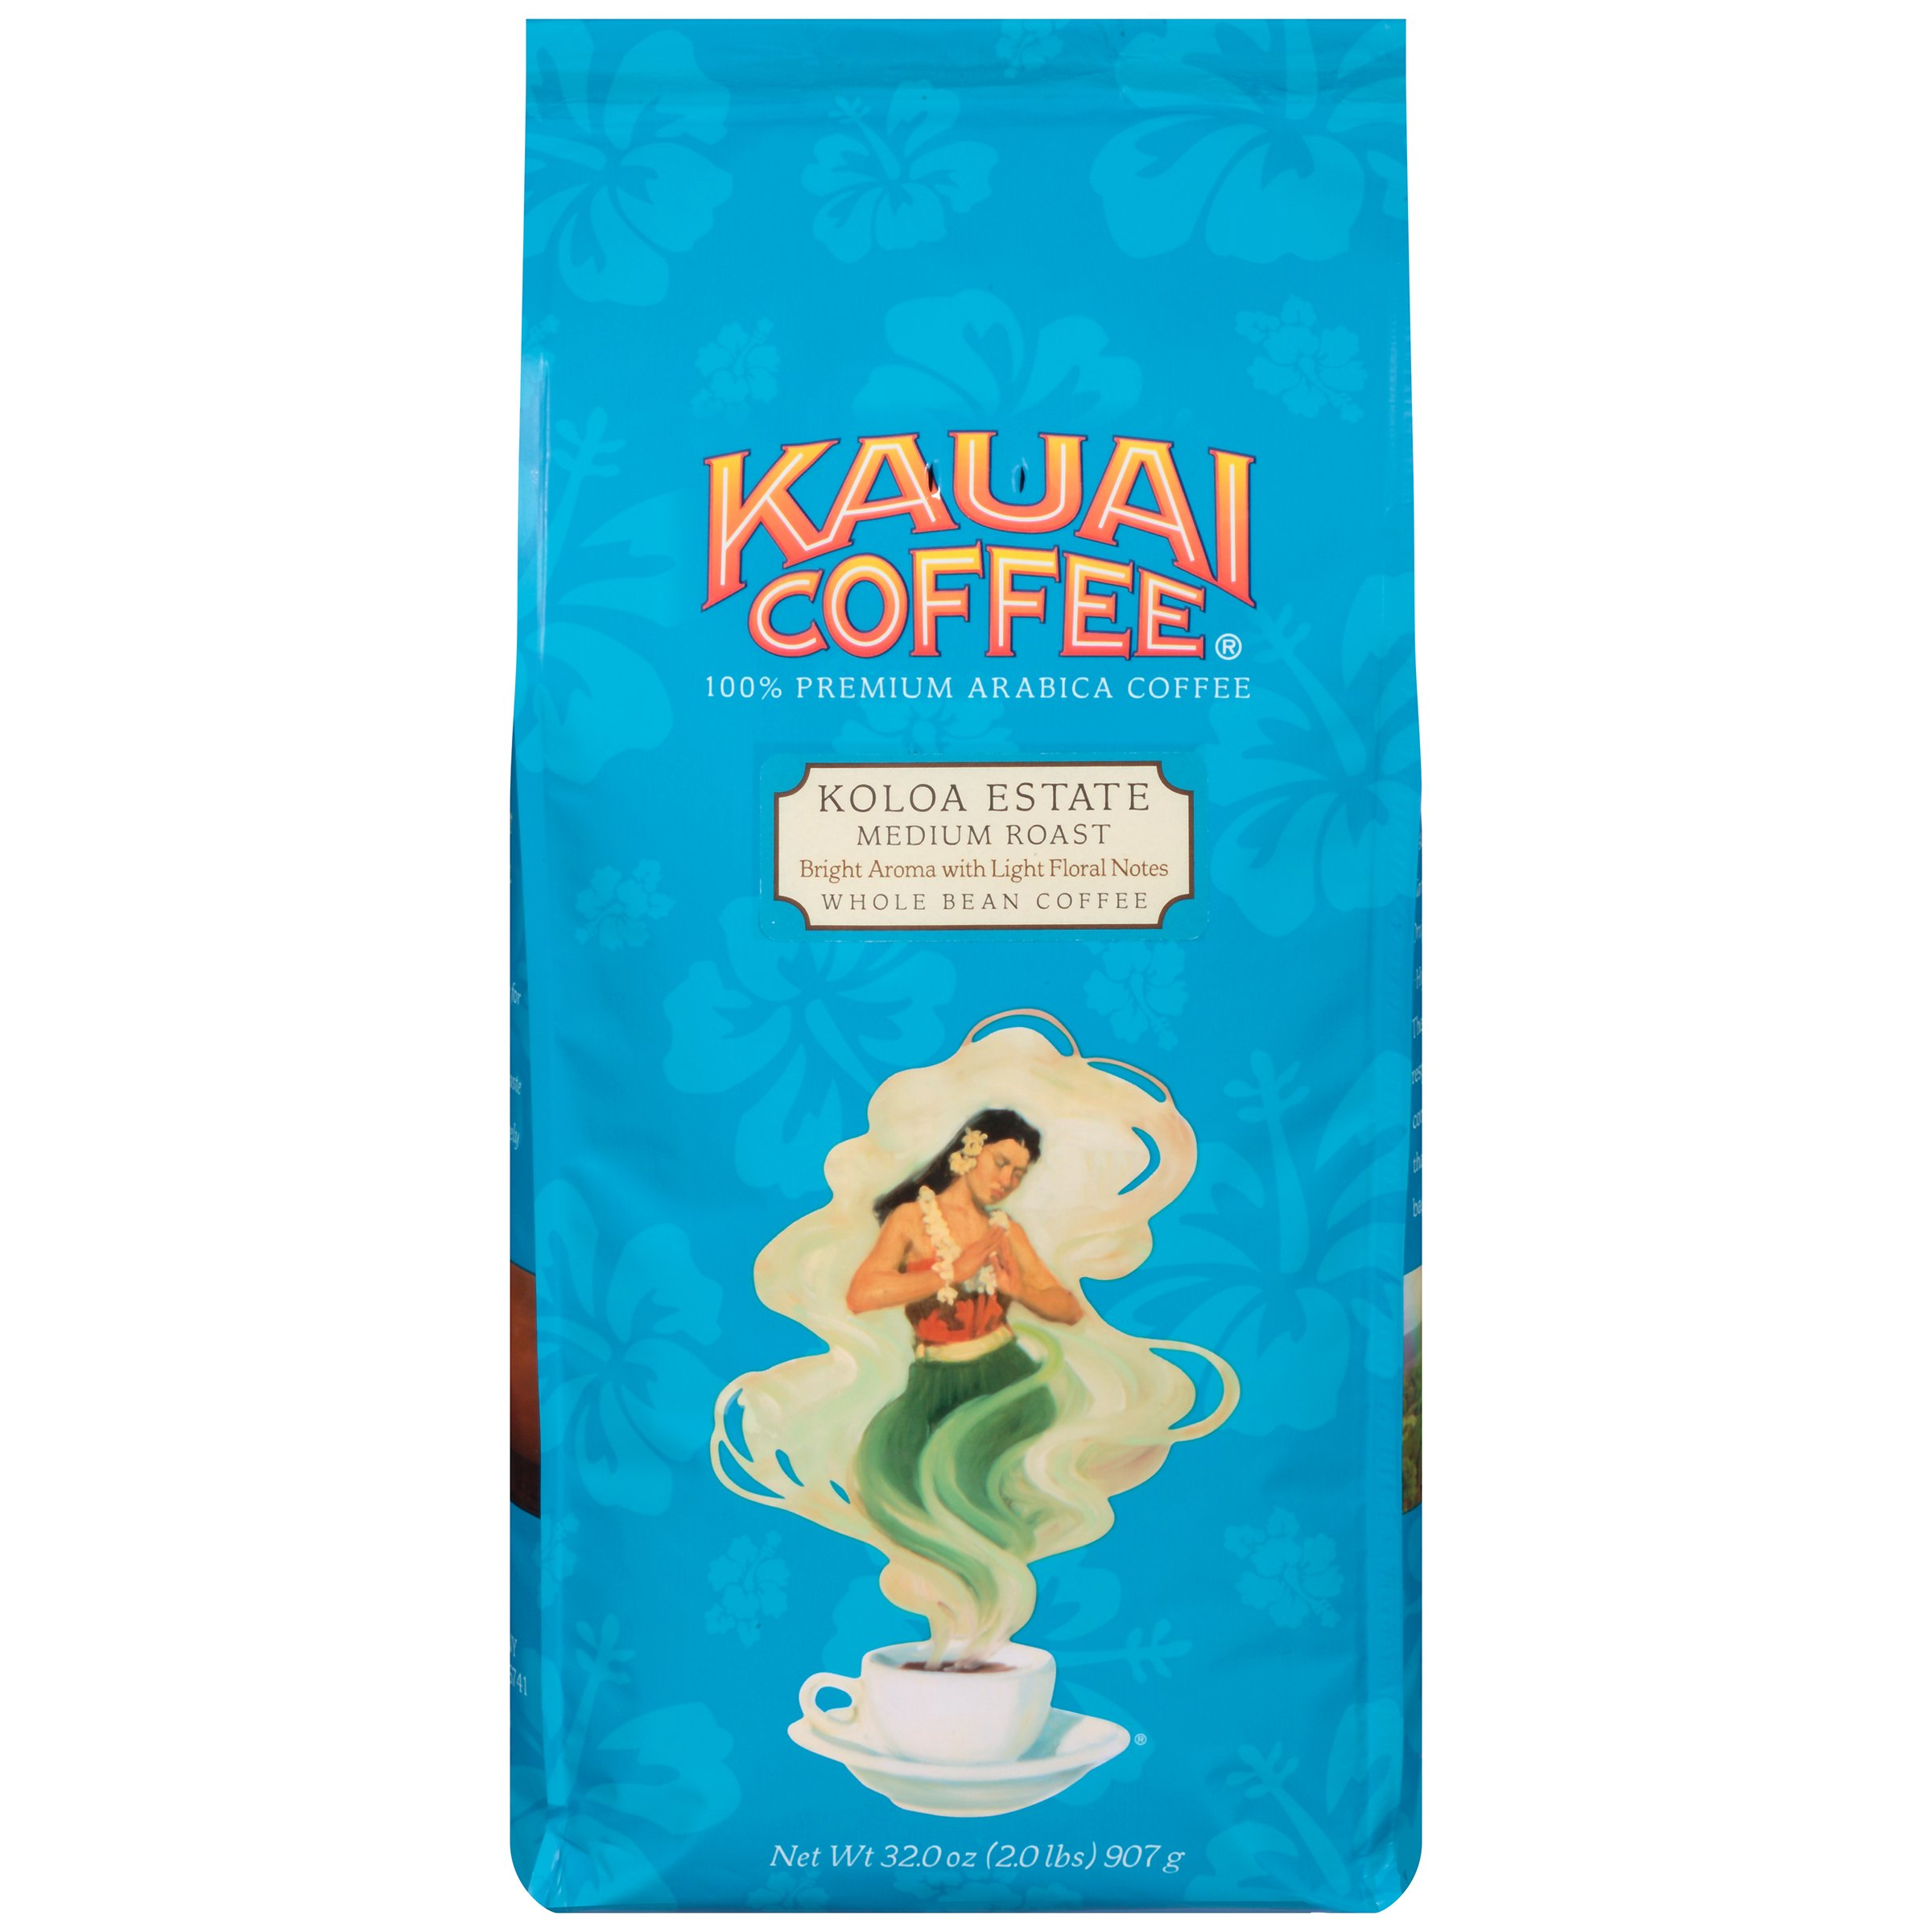 100% Kauai Whole Bean Coffee, Koloa Estate Medium Roast – 100% Premium Arabica Whole Bean Coffee from Hawaii's Largest Coffee Grower - Bright Aroma with Light Floral Notes (32 Ounces) by Kauai (Image #1)